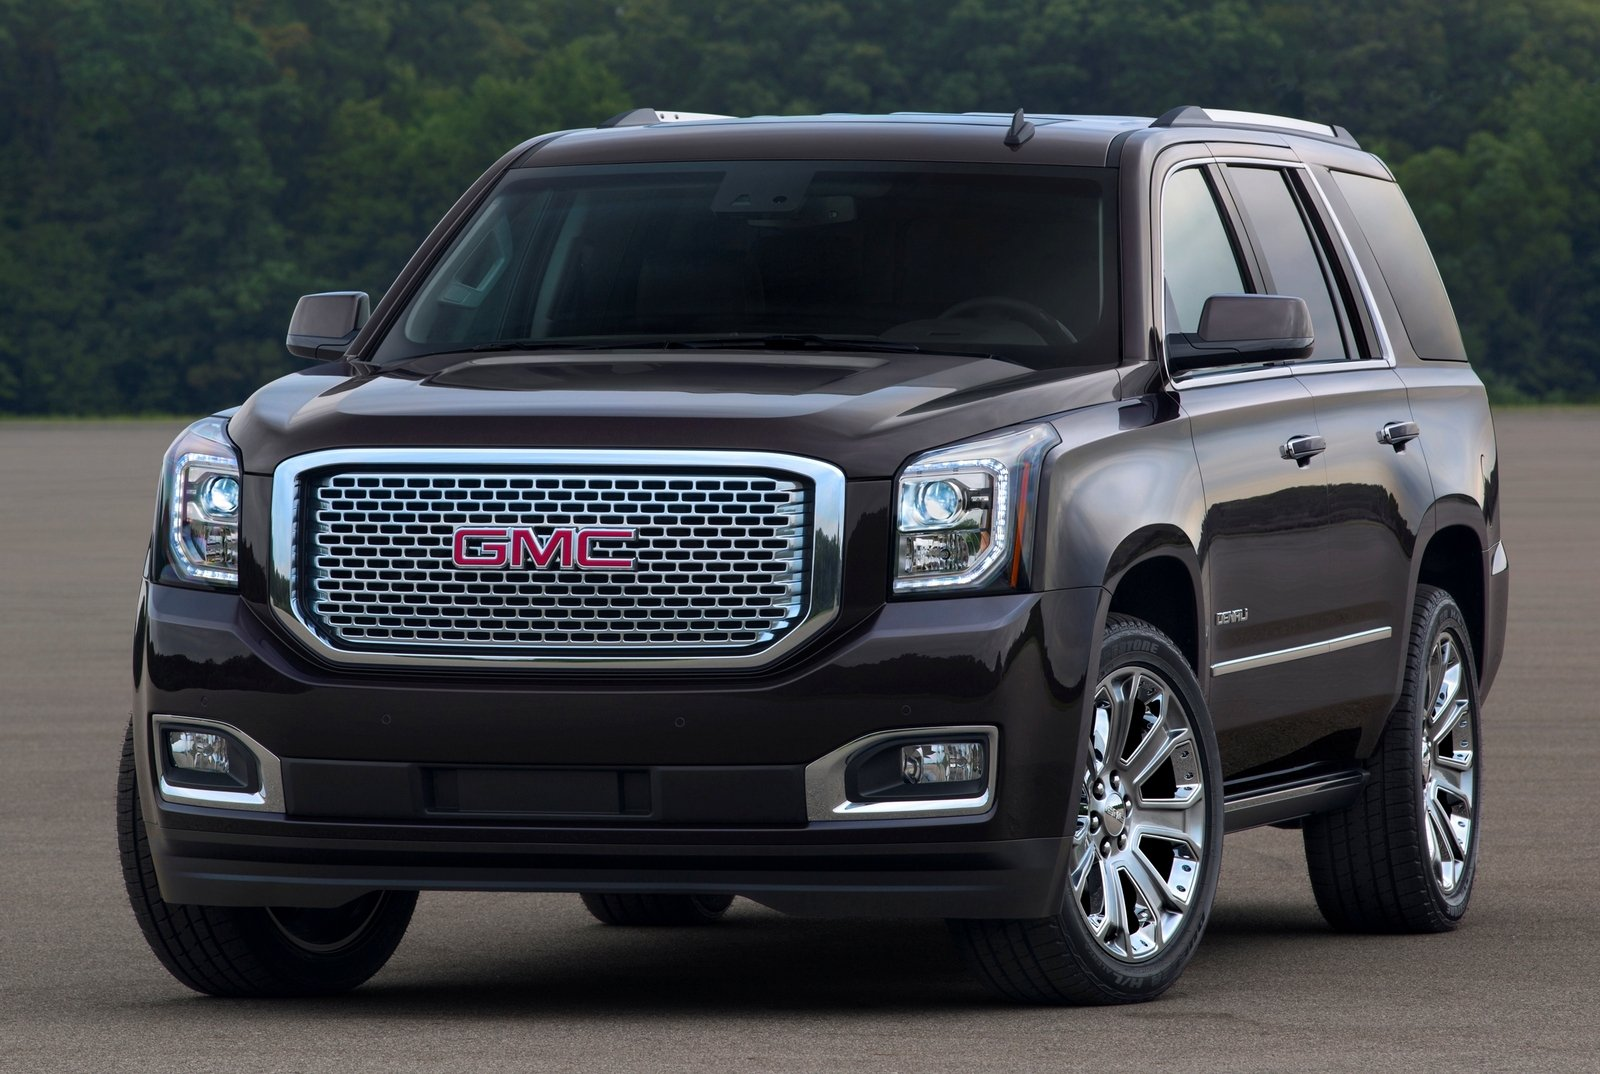 2015 gmc yukon denali review top speed. Black Bedroom Furniture Sets. Home Design Ideas